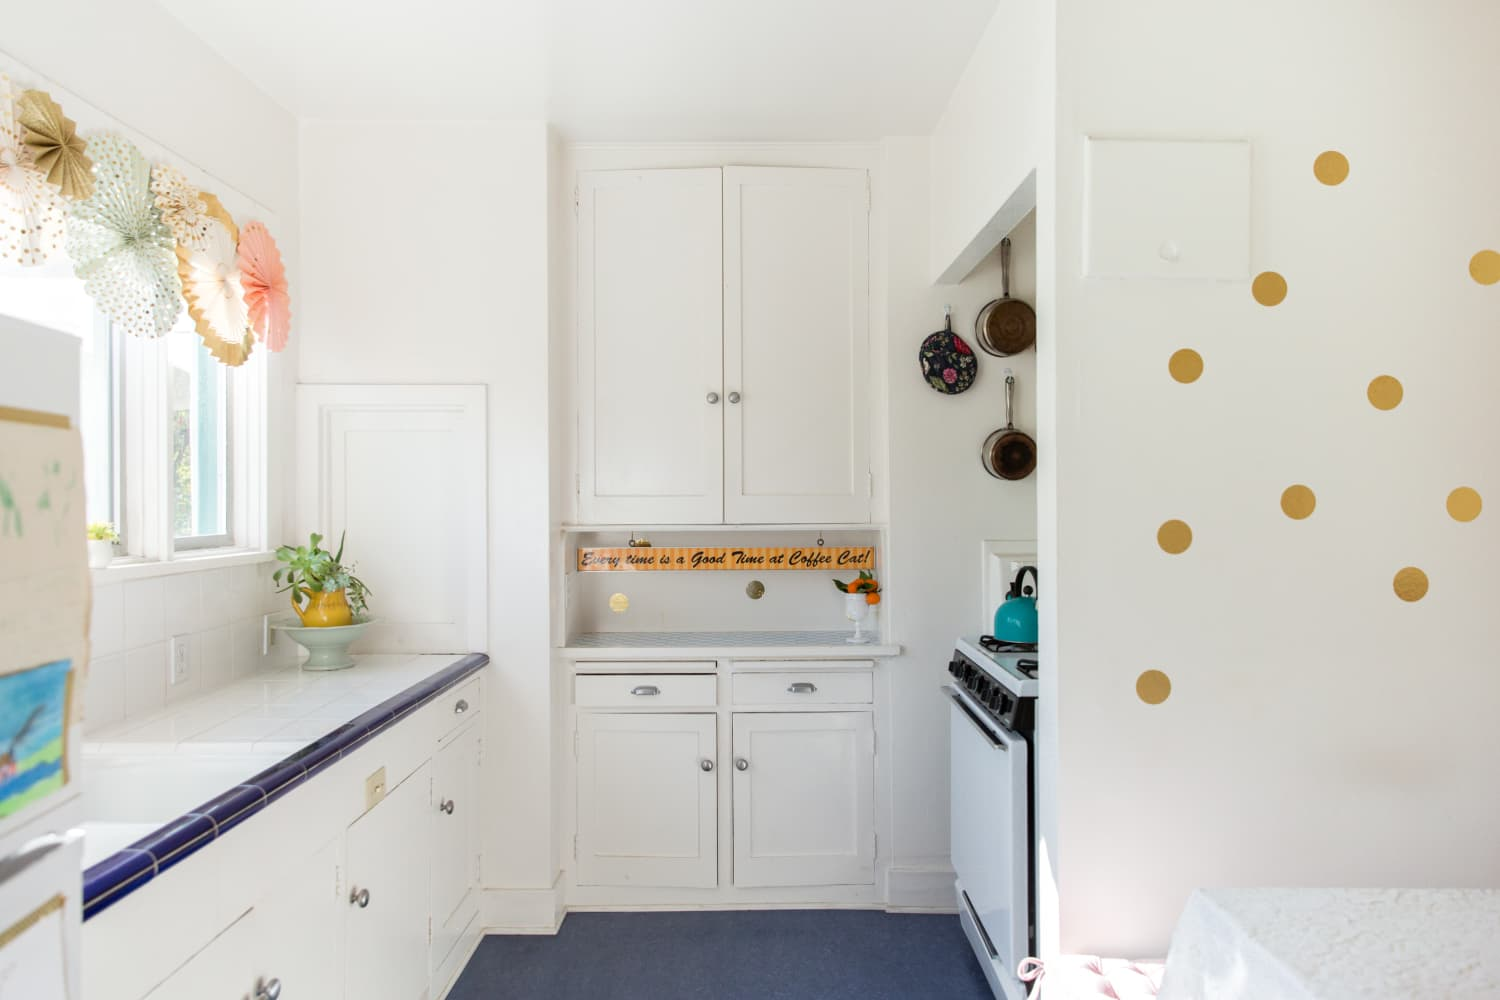 DIY Fixes for Rental Kitchen Cabinets, Appliances ...